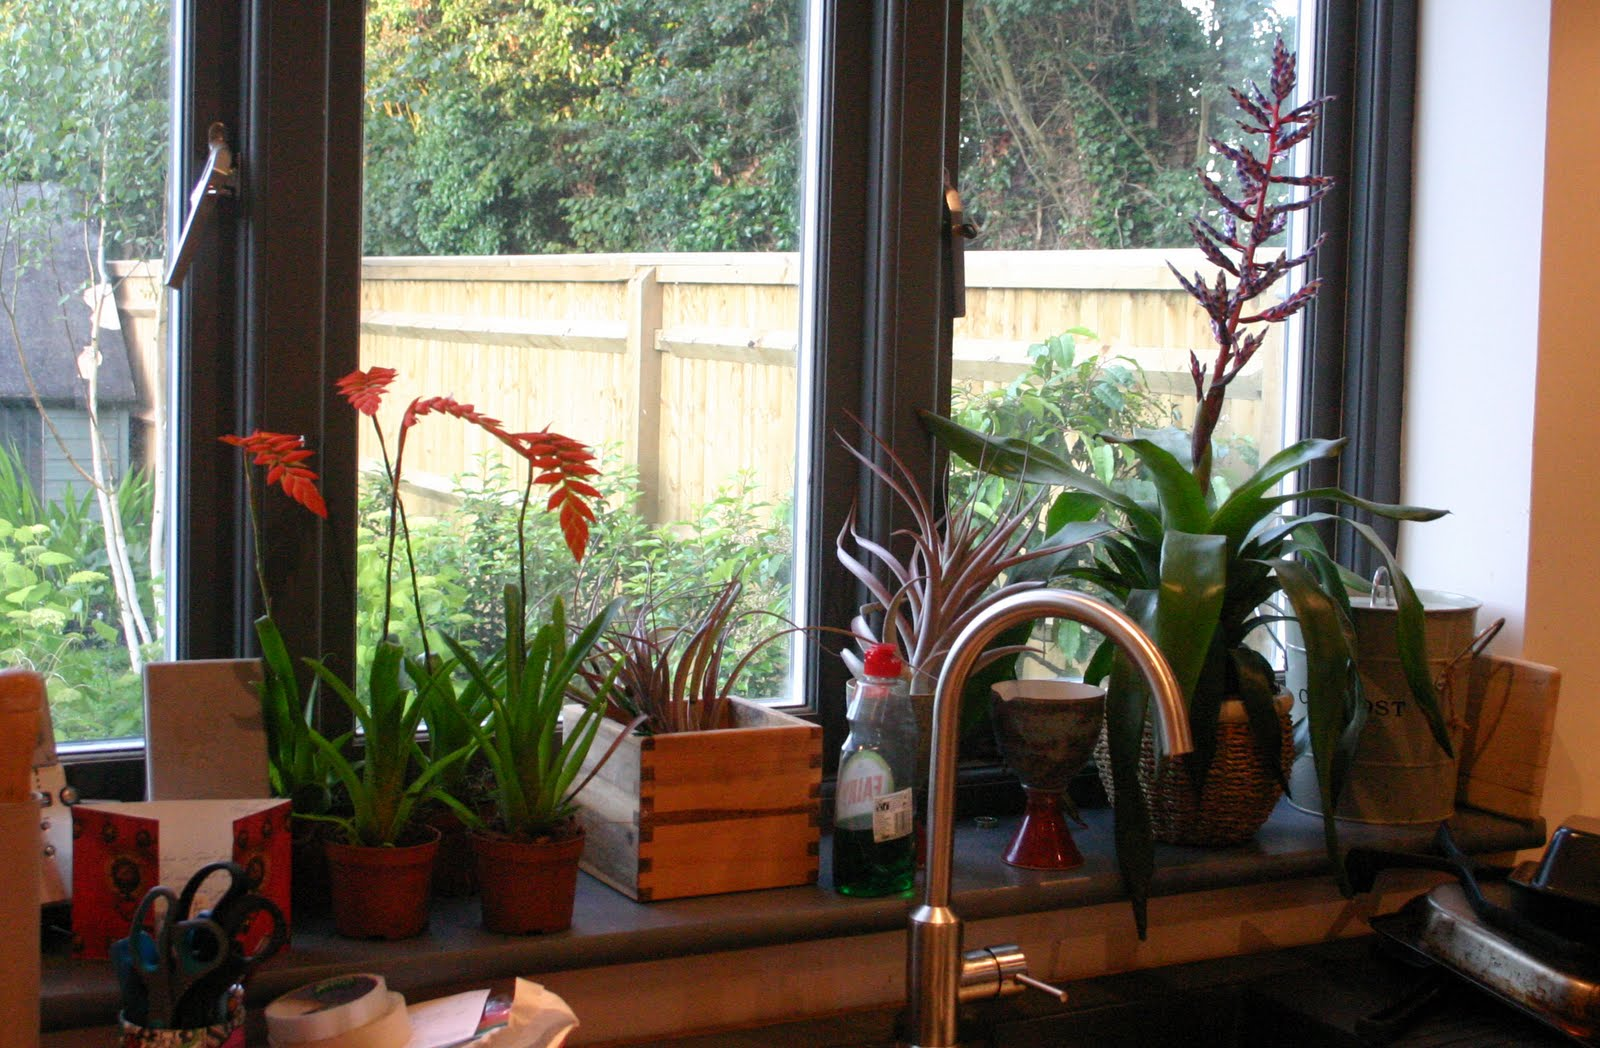 air plants on the kitchen